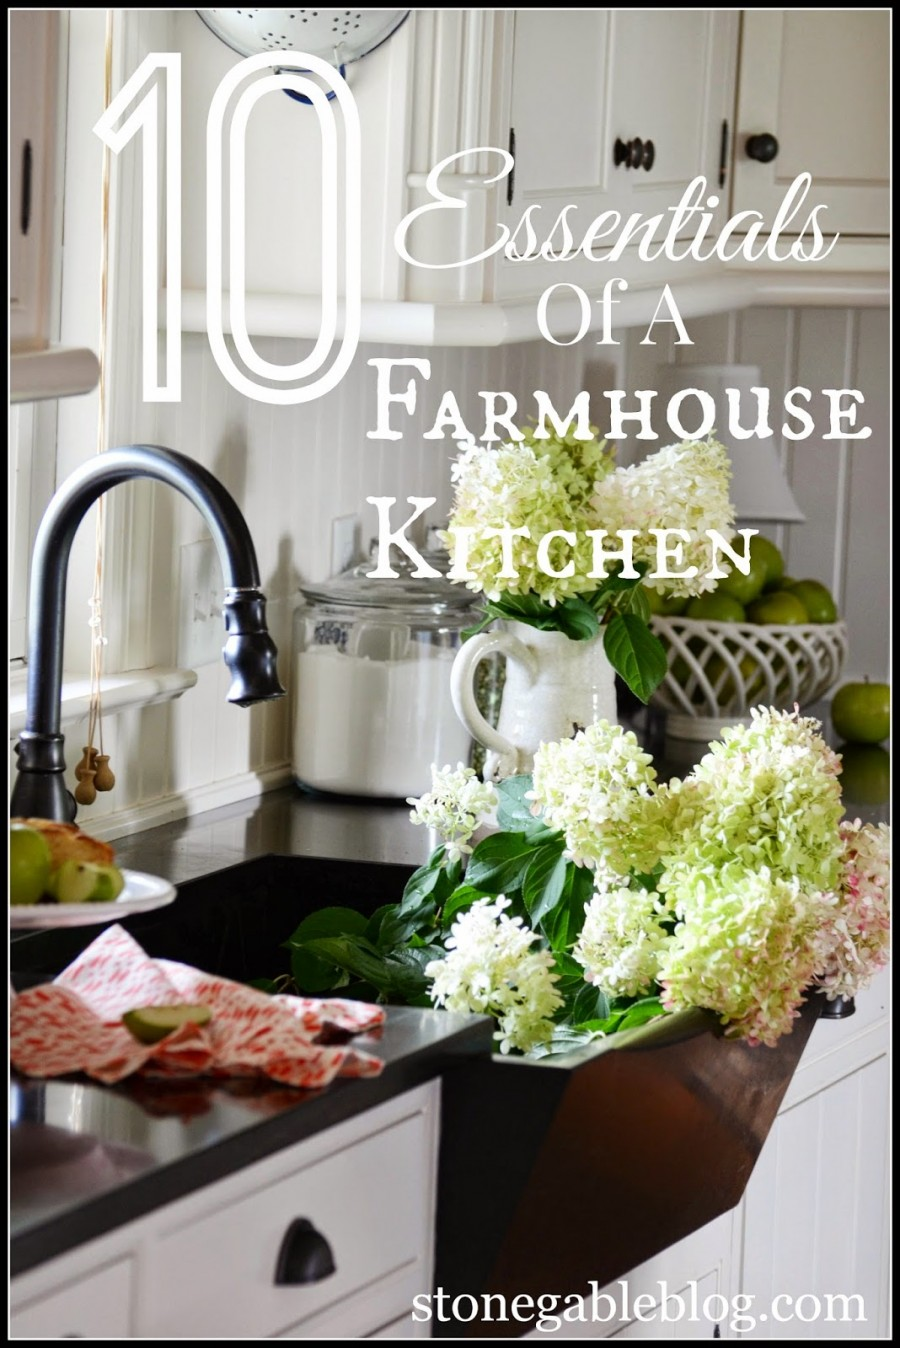 10 Elements Of A Farmhouse Kitchen Stonegable